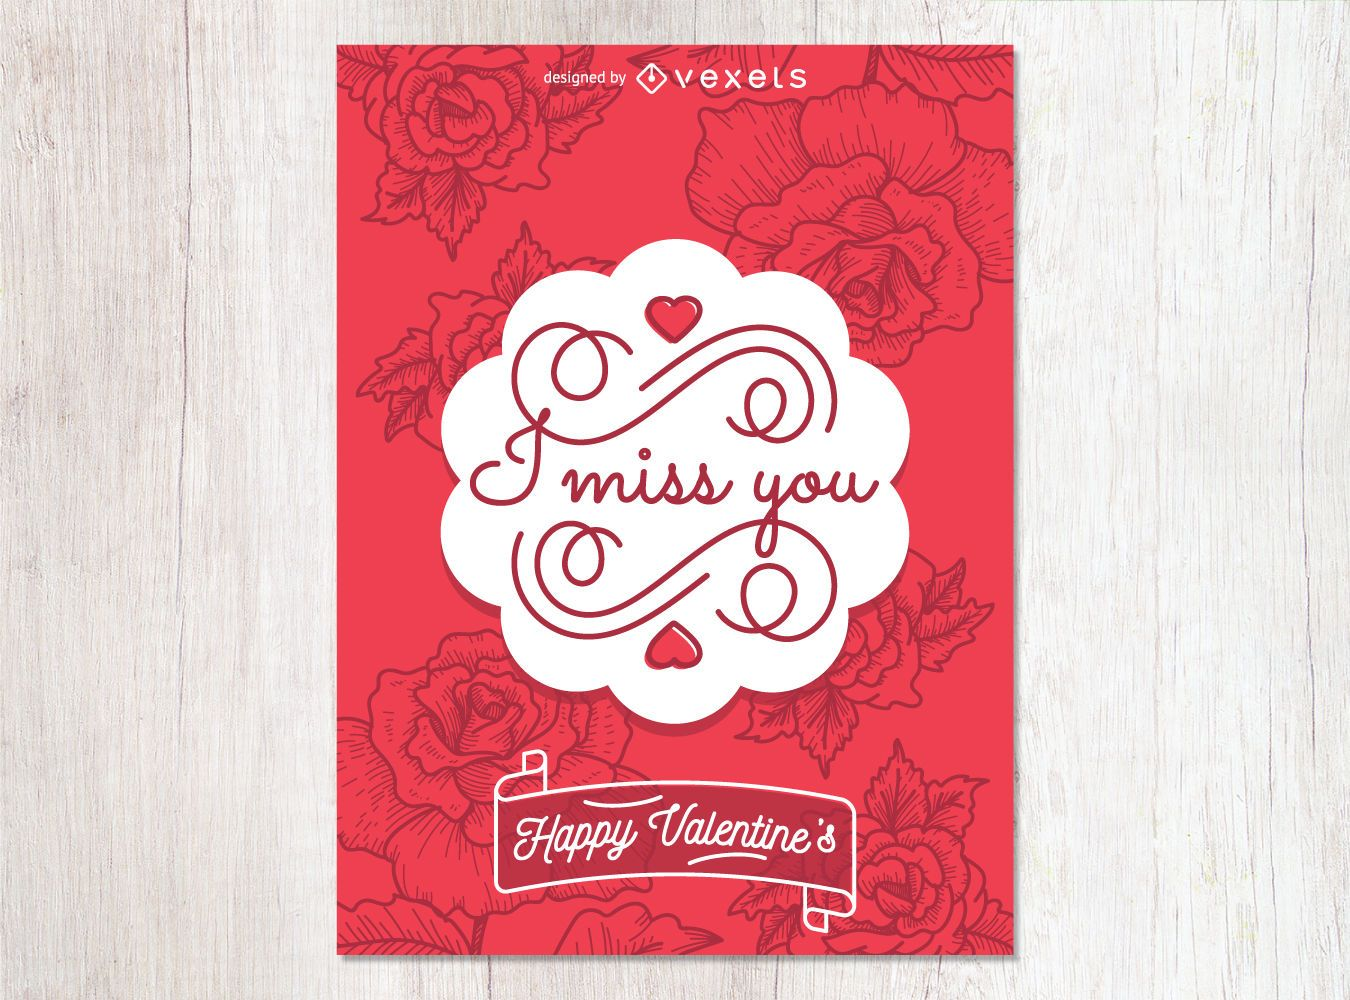 floral valentine's day card  vector download